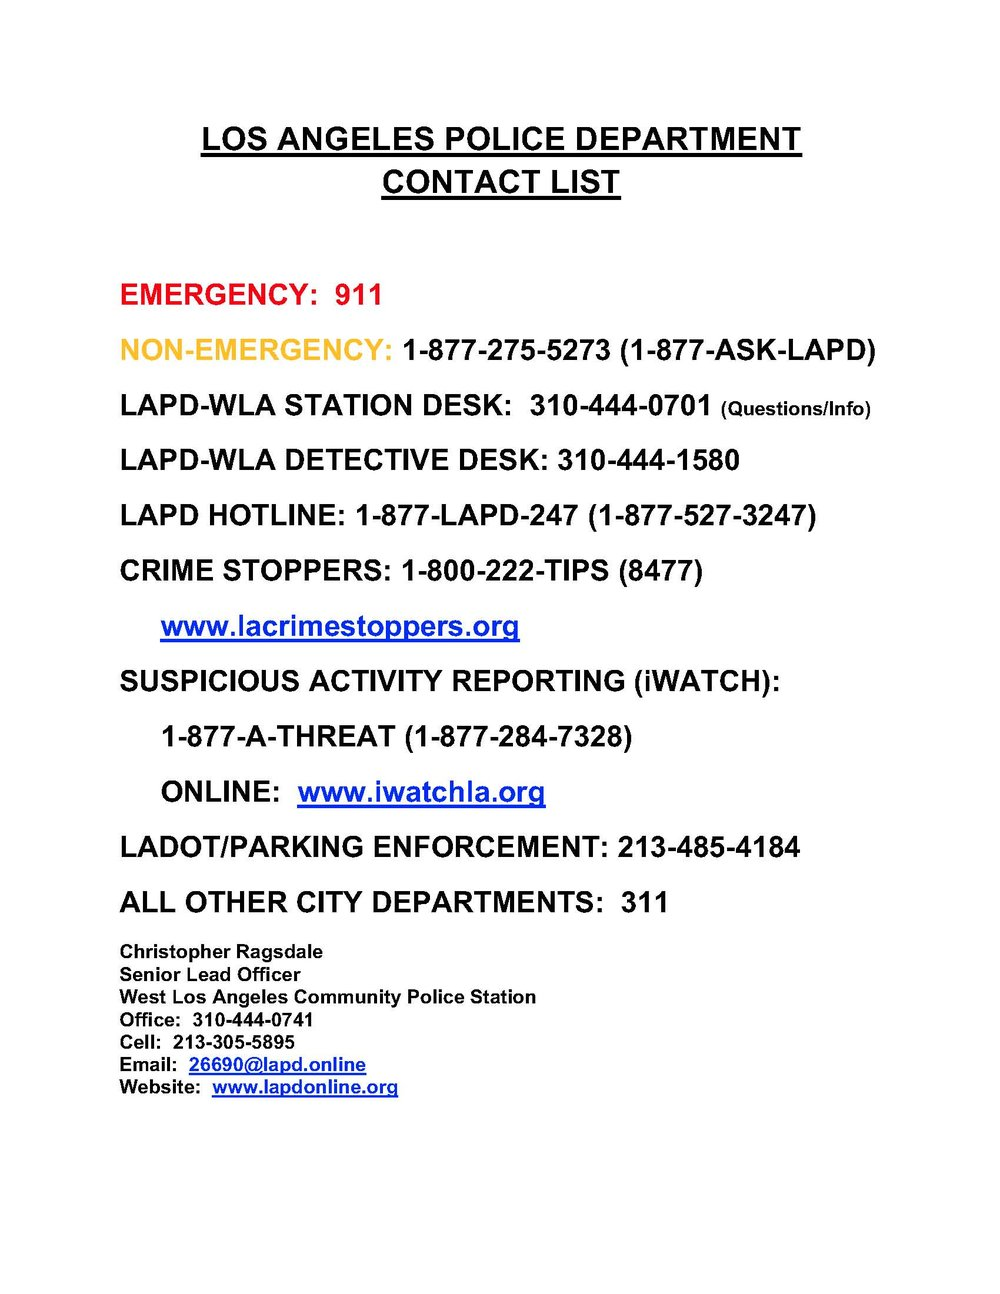 LOS ANGELES POLICE DEPARTMENT CONTACT LIST.jpg